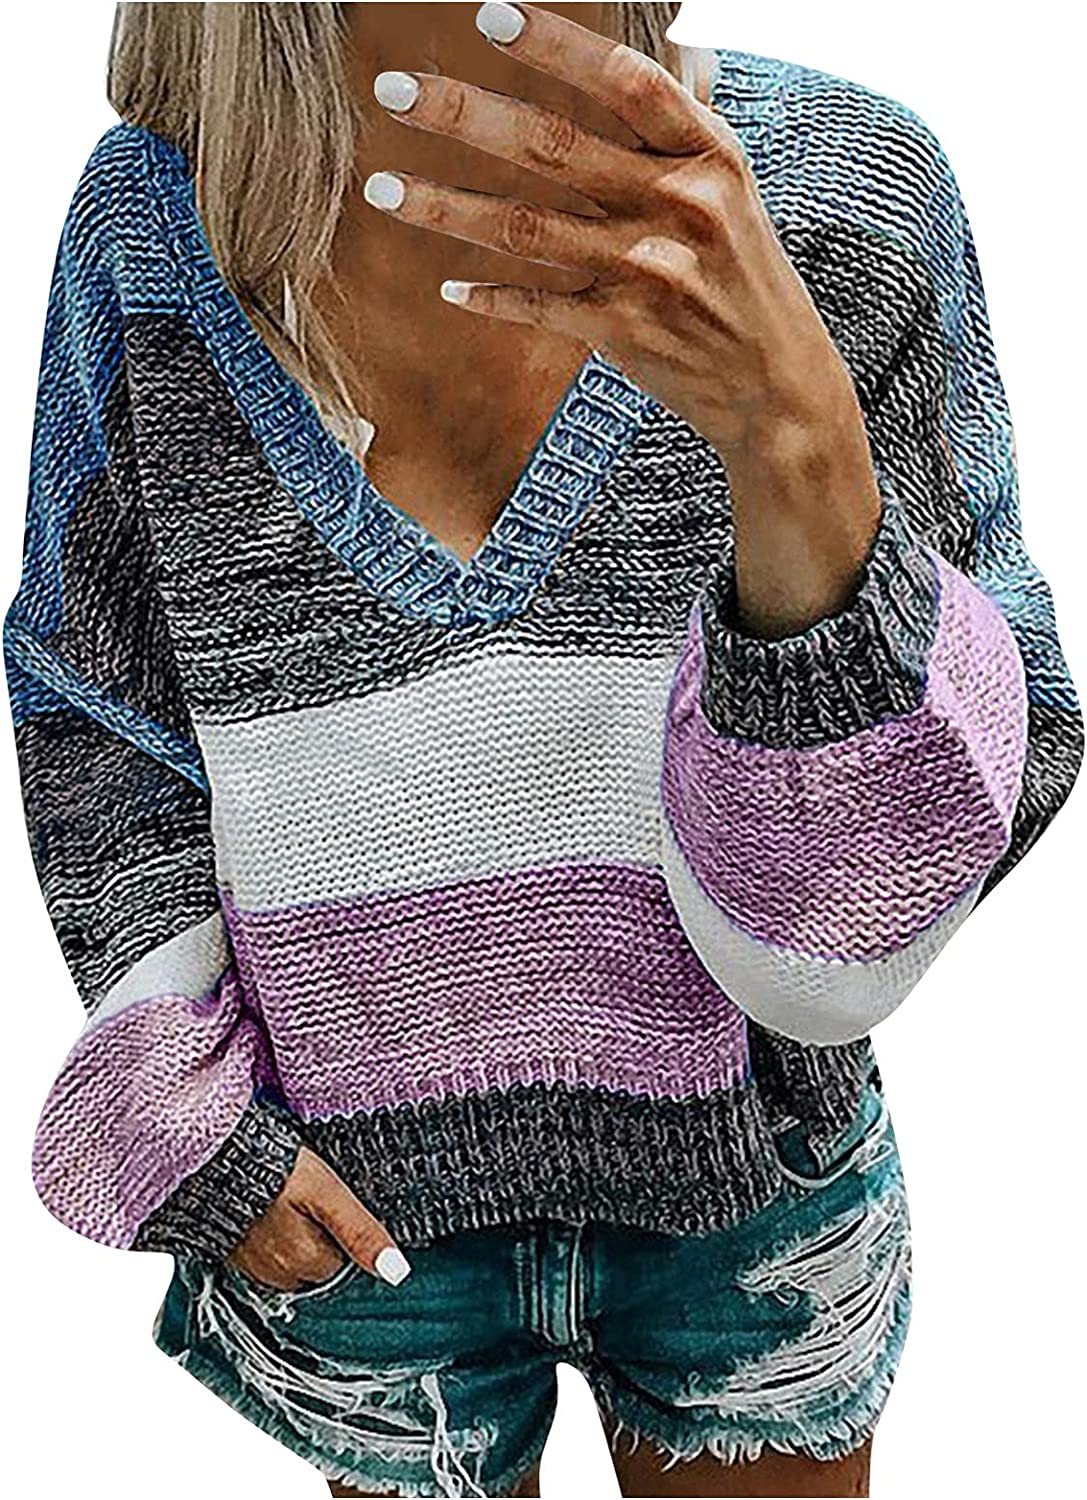 Womens Flared Sleeves Sweater Stripe Knit Long Sleeve Blouse Crew Neck Loose Sweater Tops